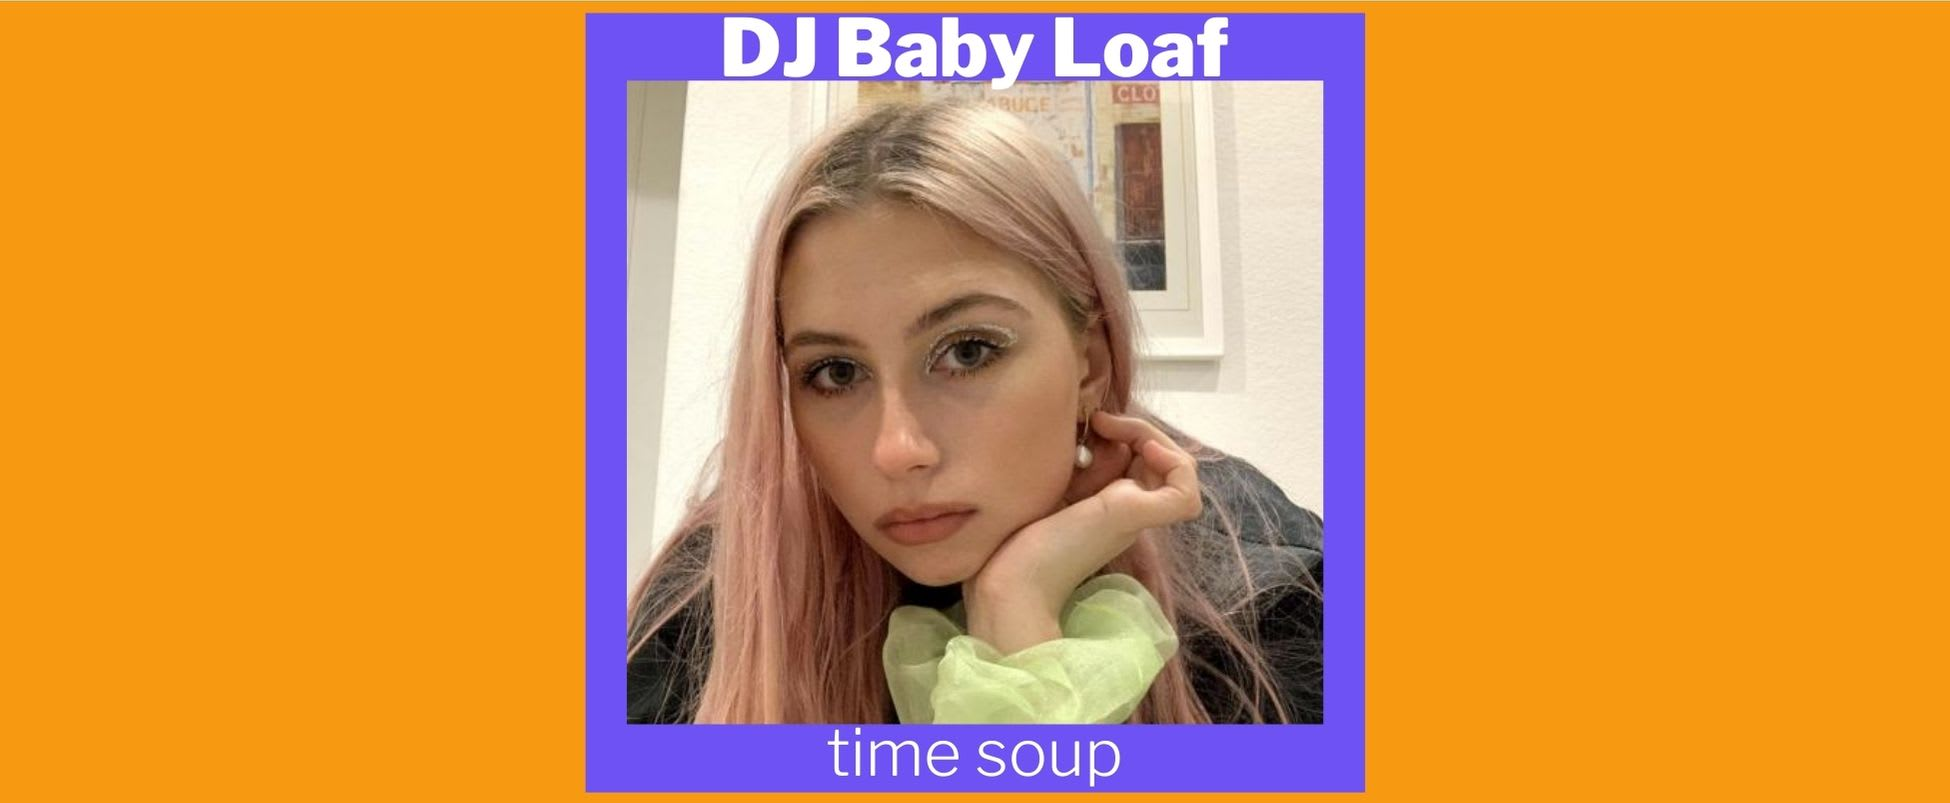 Show Spotlight: time soup with DJ Baby Loaf